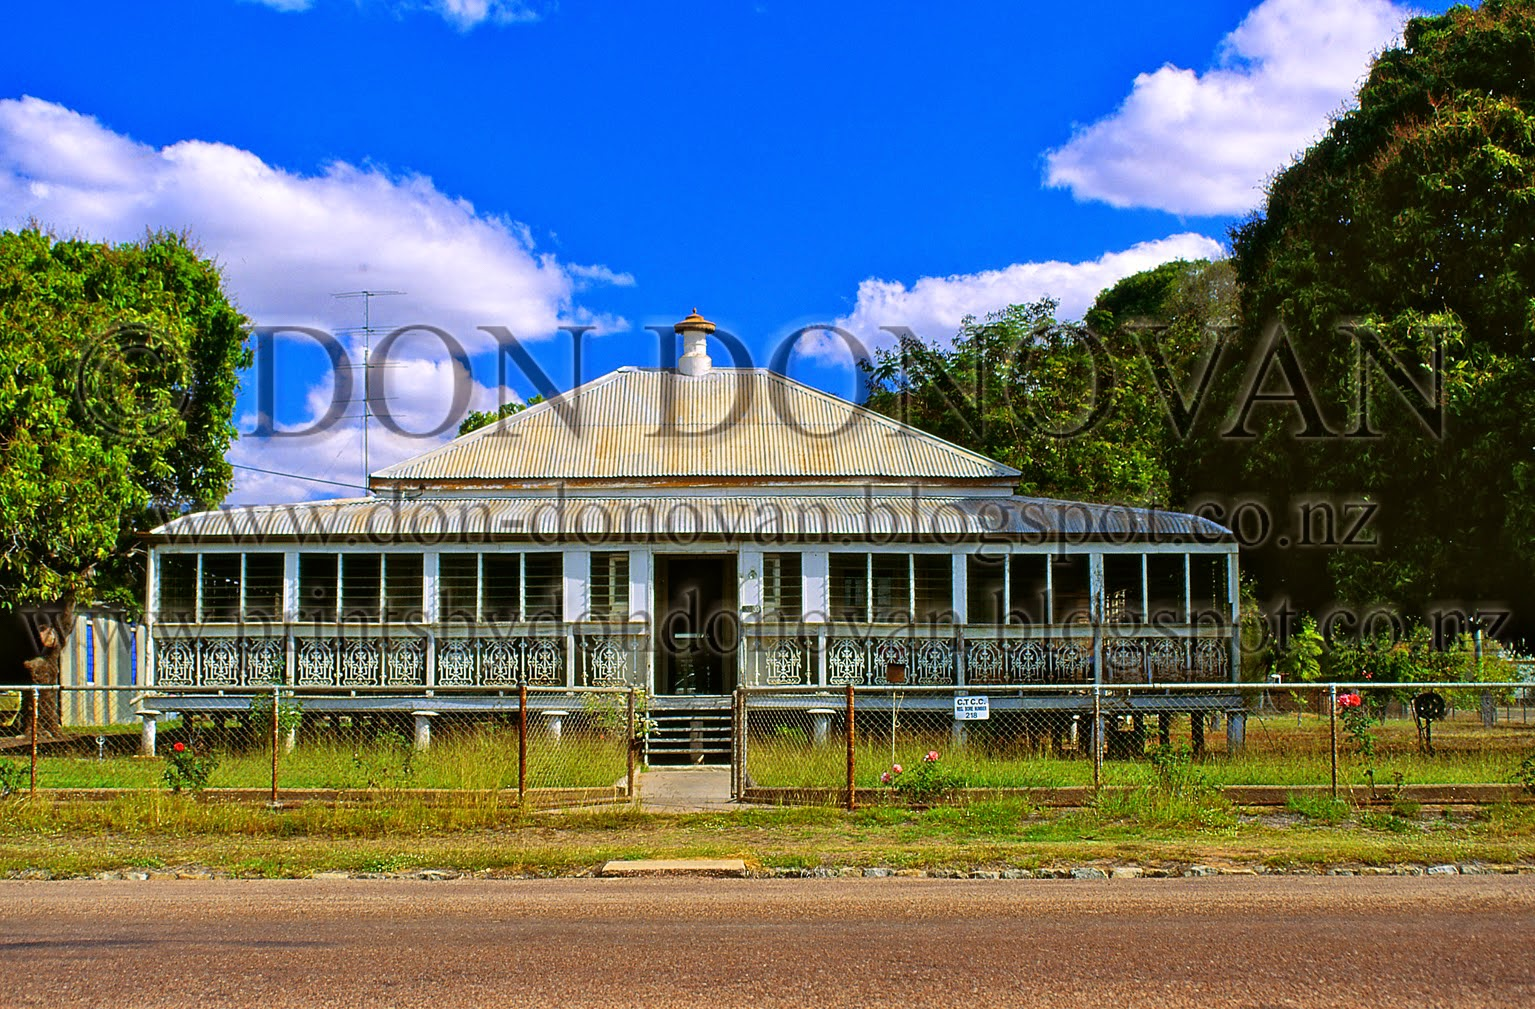 don donovan u0026 39 s world  photoprint for sale  classic queenslander house  charters towers